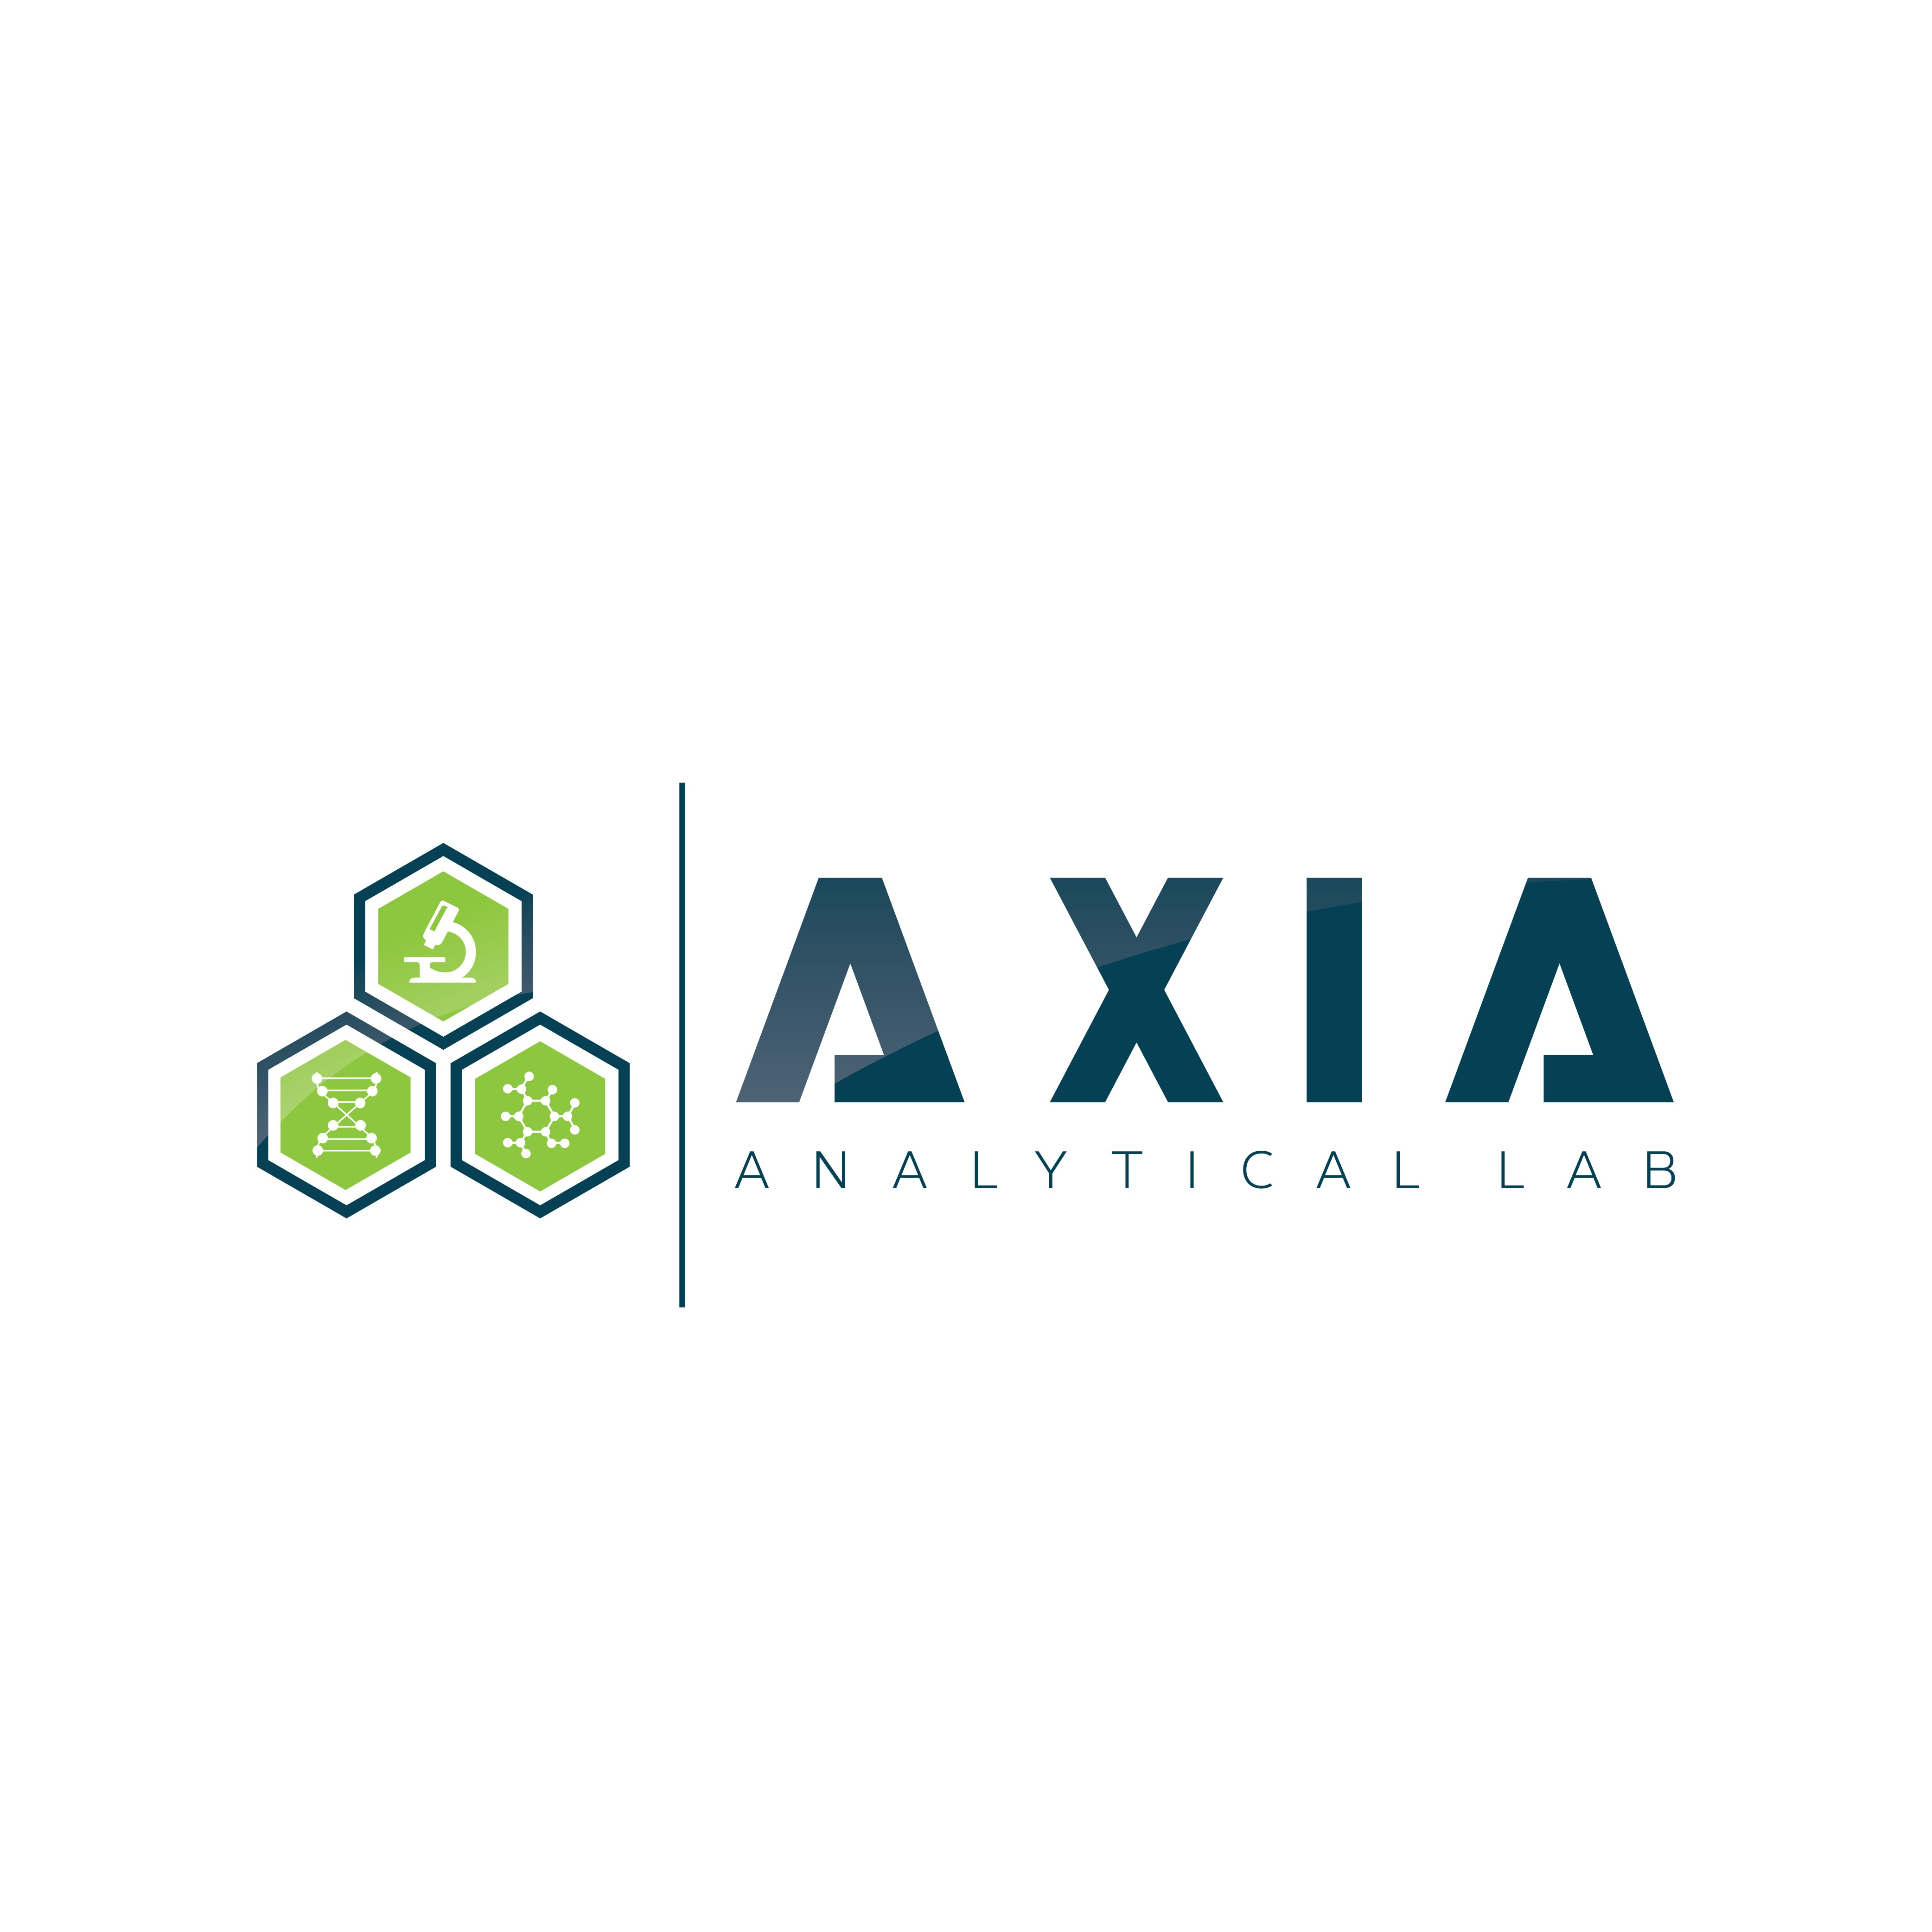 Create a modern logo for a analytical laboratory